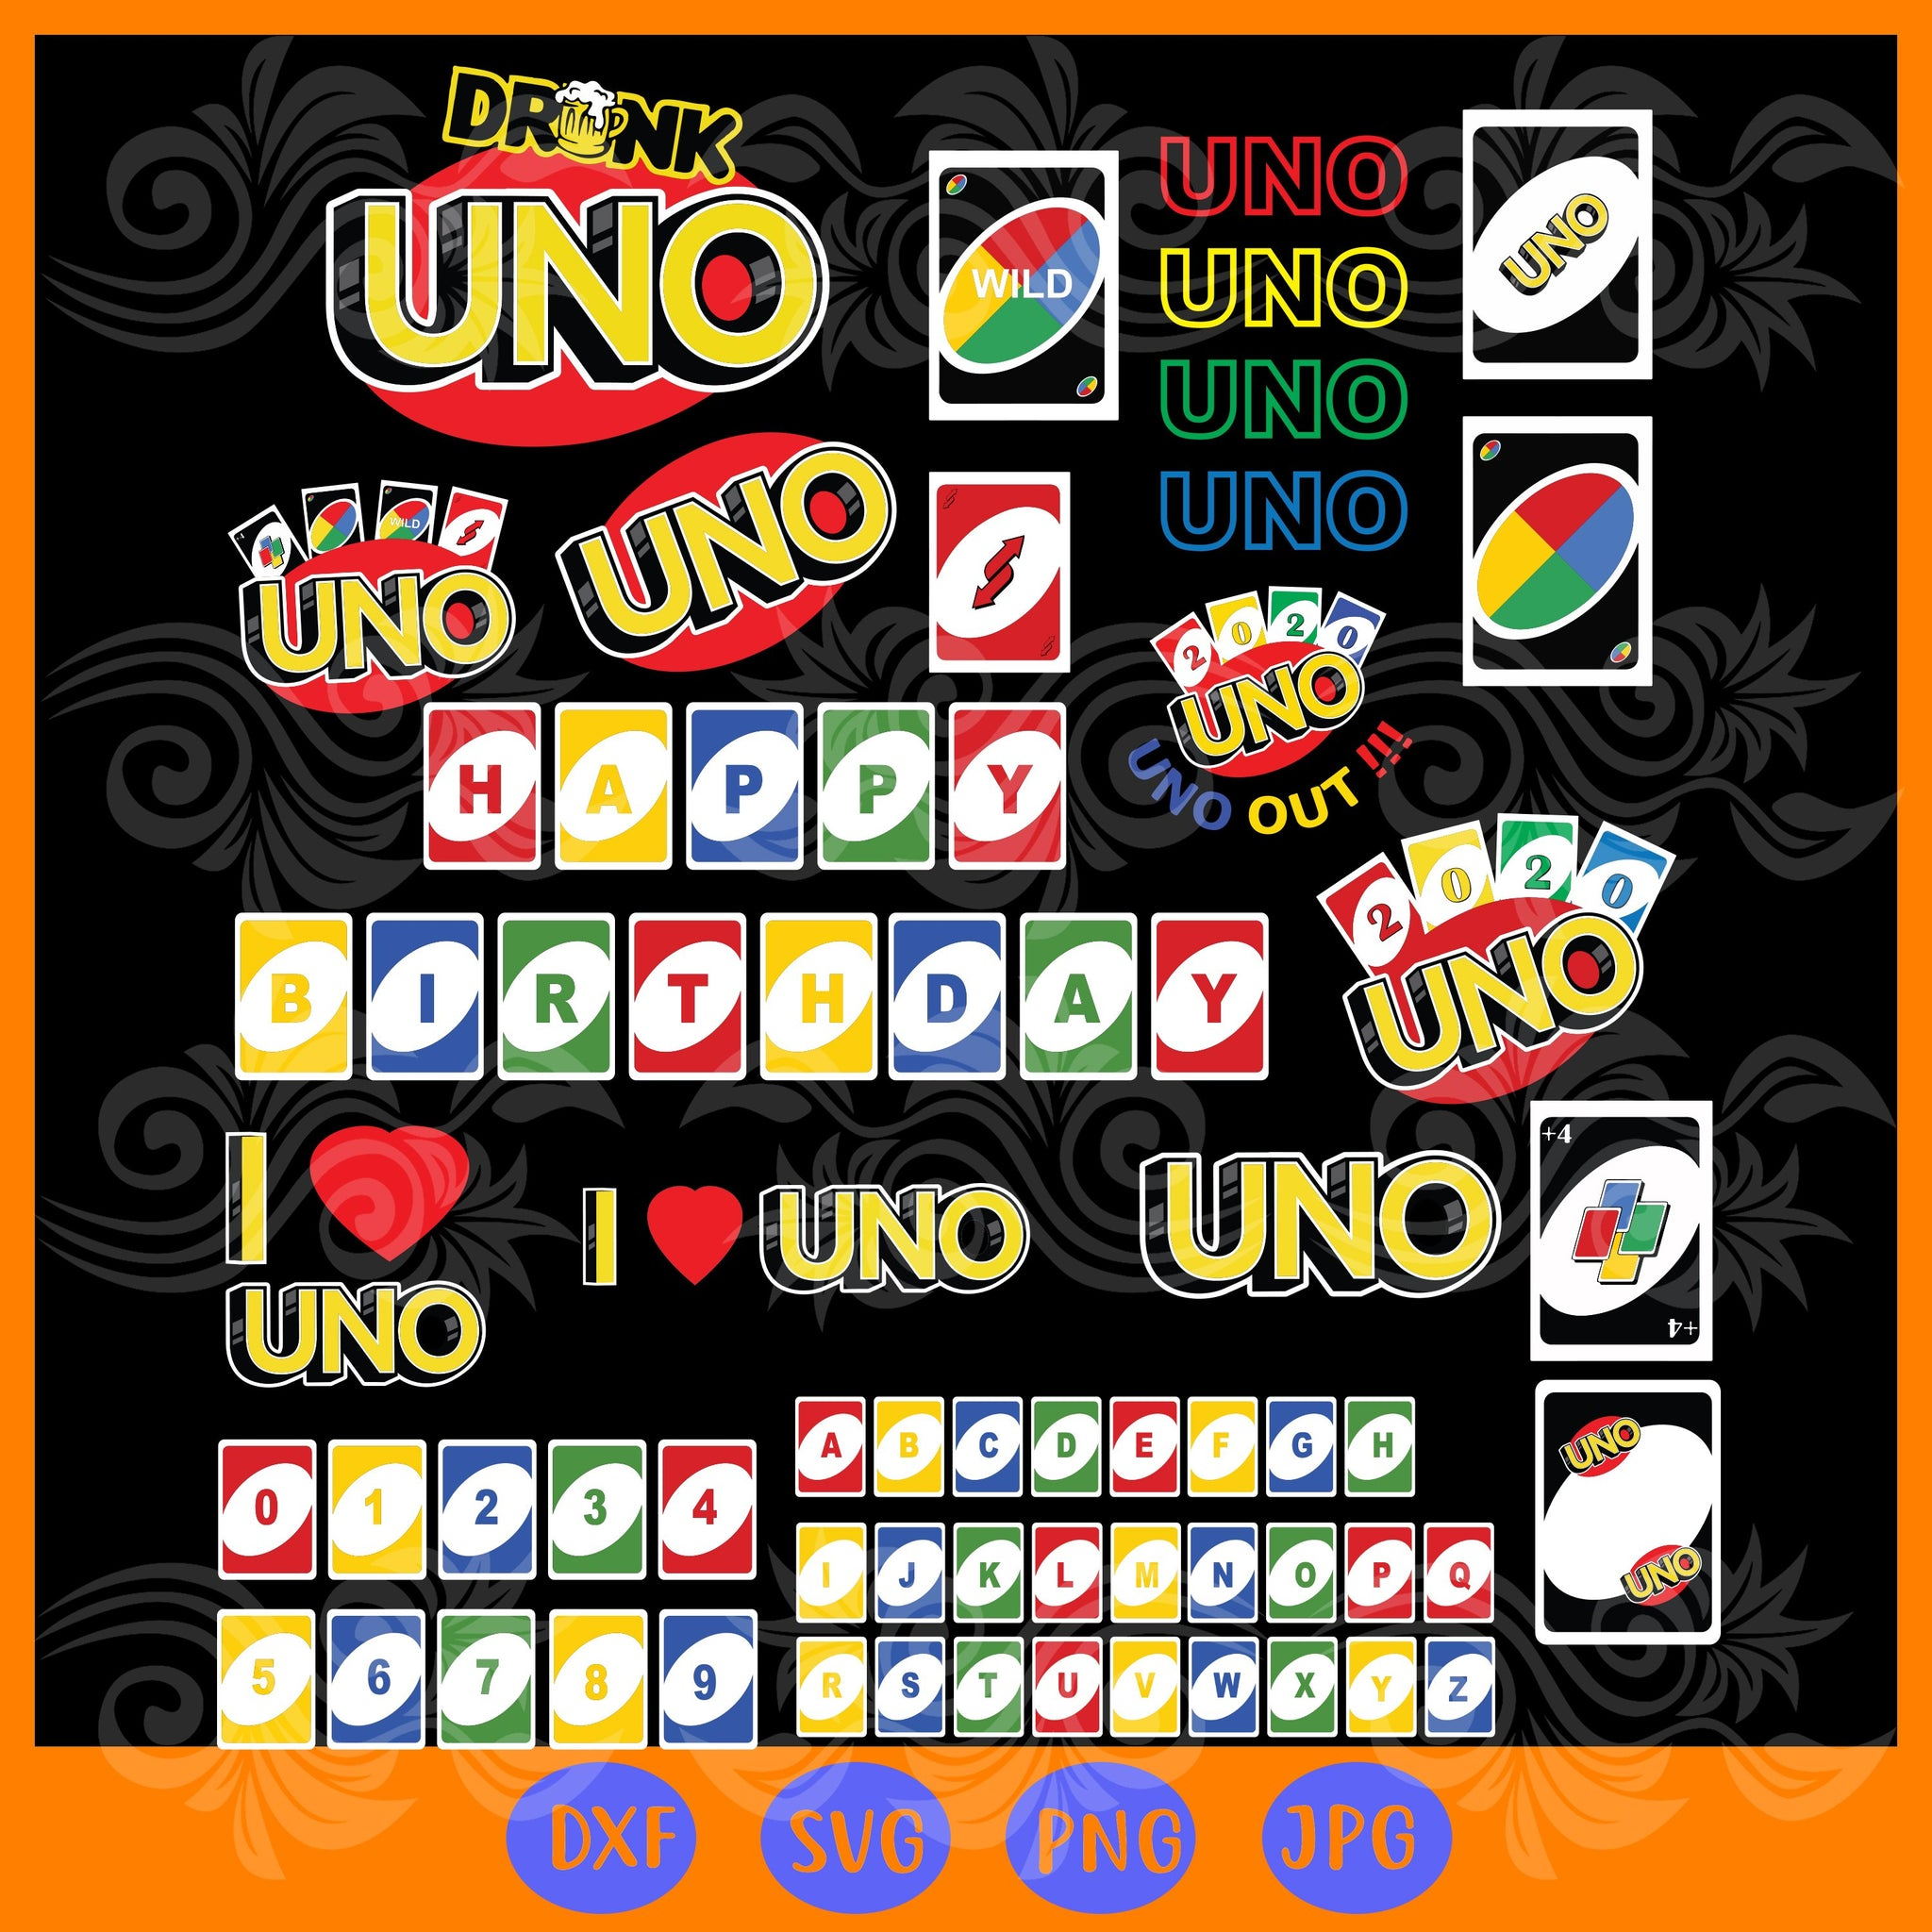 Uno card bundle , uno svg birthday, uno drunk logo, uno shirt svg, uno card svg, uno we out, uno party, uno alphabet, uno 2020 svg, trending svg, Files For Silhouette, Files For Cricut, SVG, DXF, EPS, PNG, Instant Download